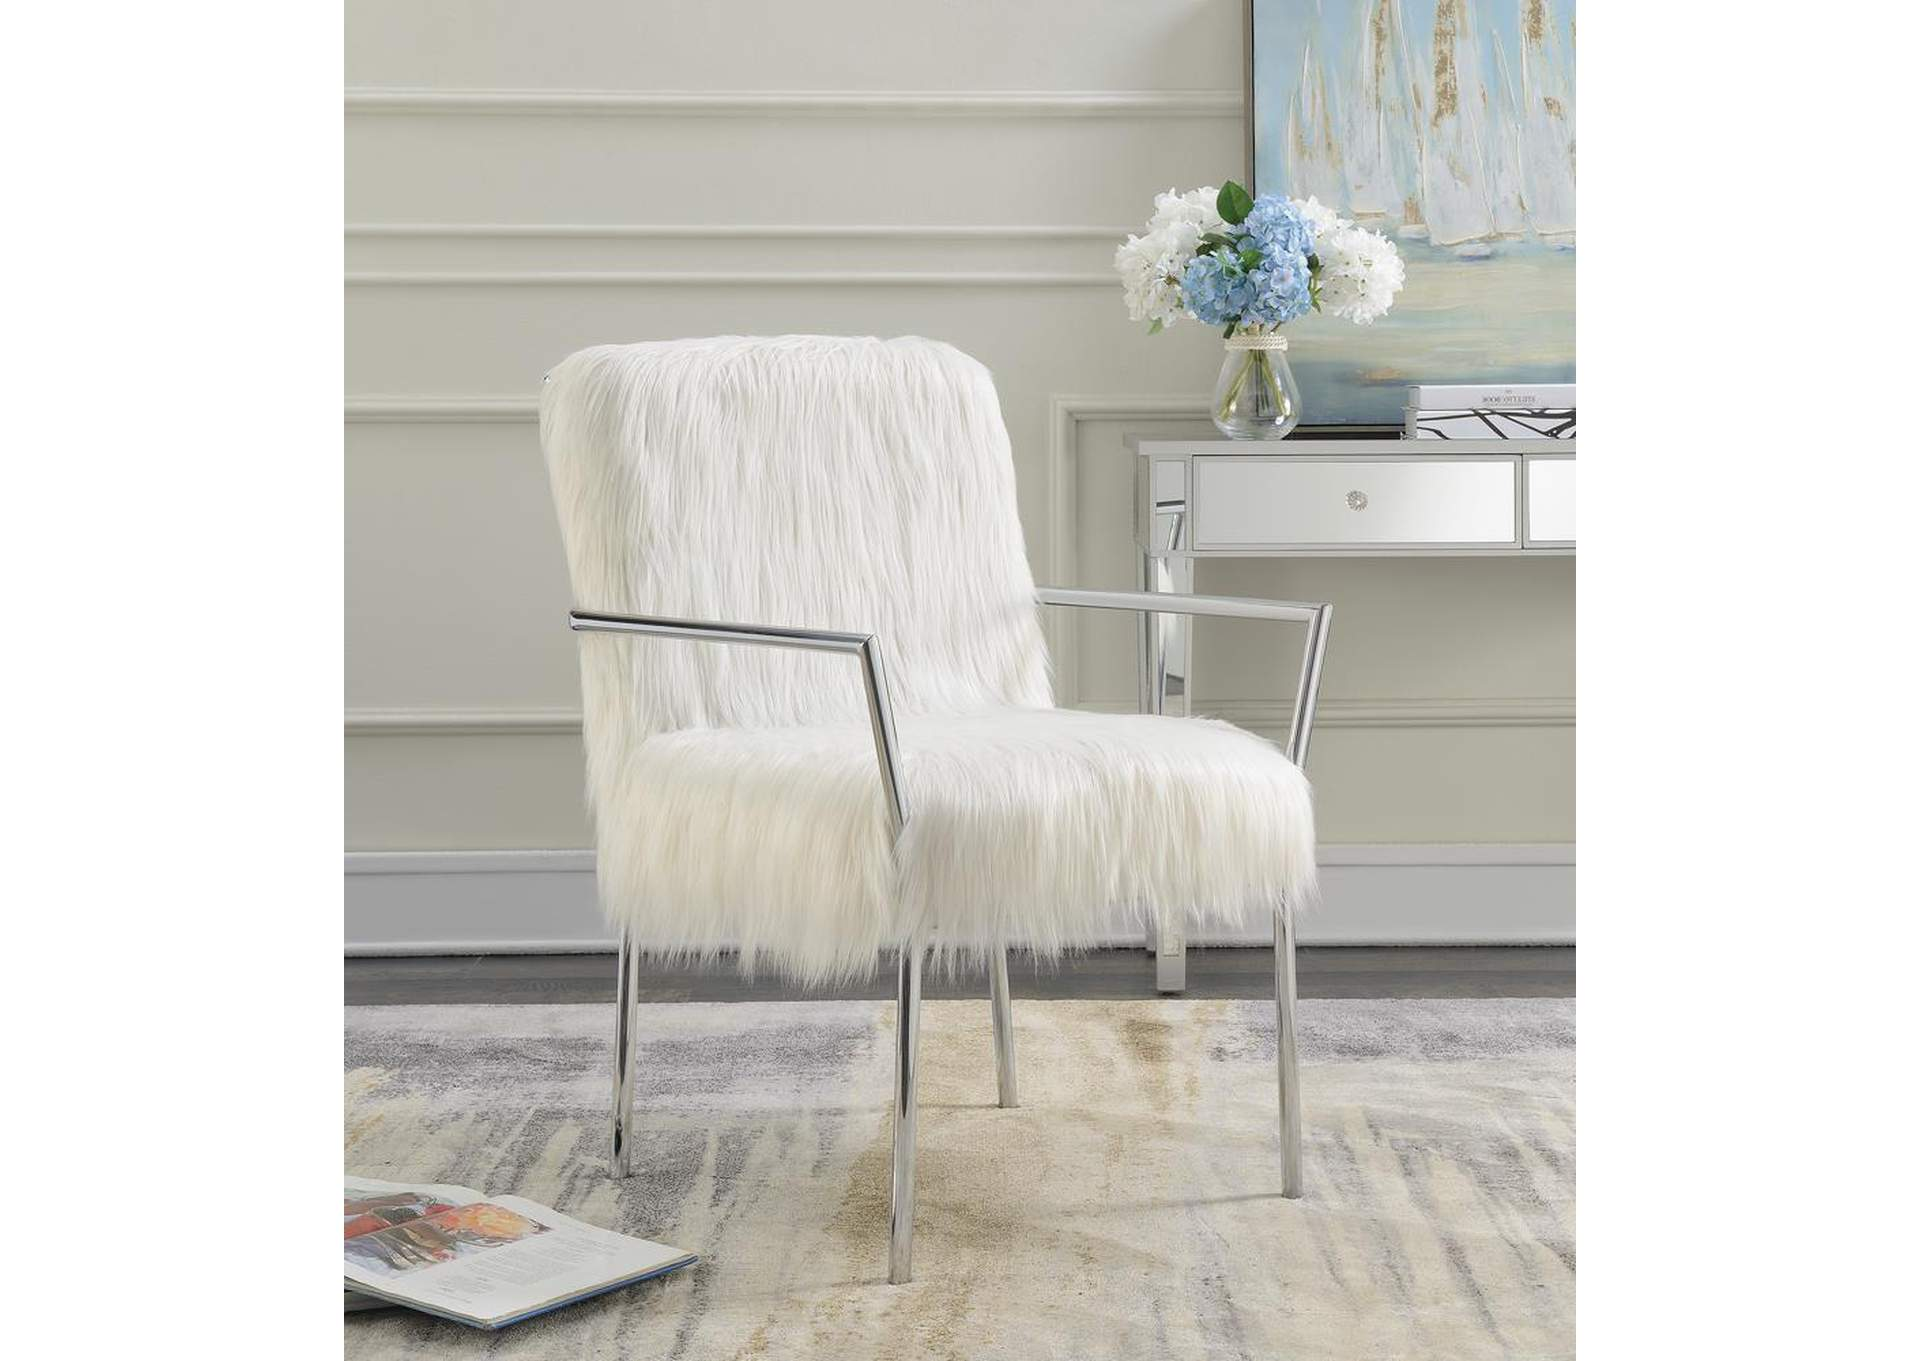 Fantastic Cohens Furniture New Castle De White Fuzzy Accent Chair Andrewgaddart Wooden Chair Designs For Living Room Andrewgaddartcom